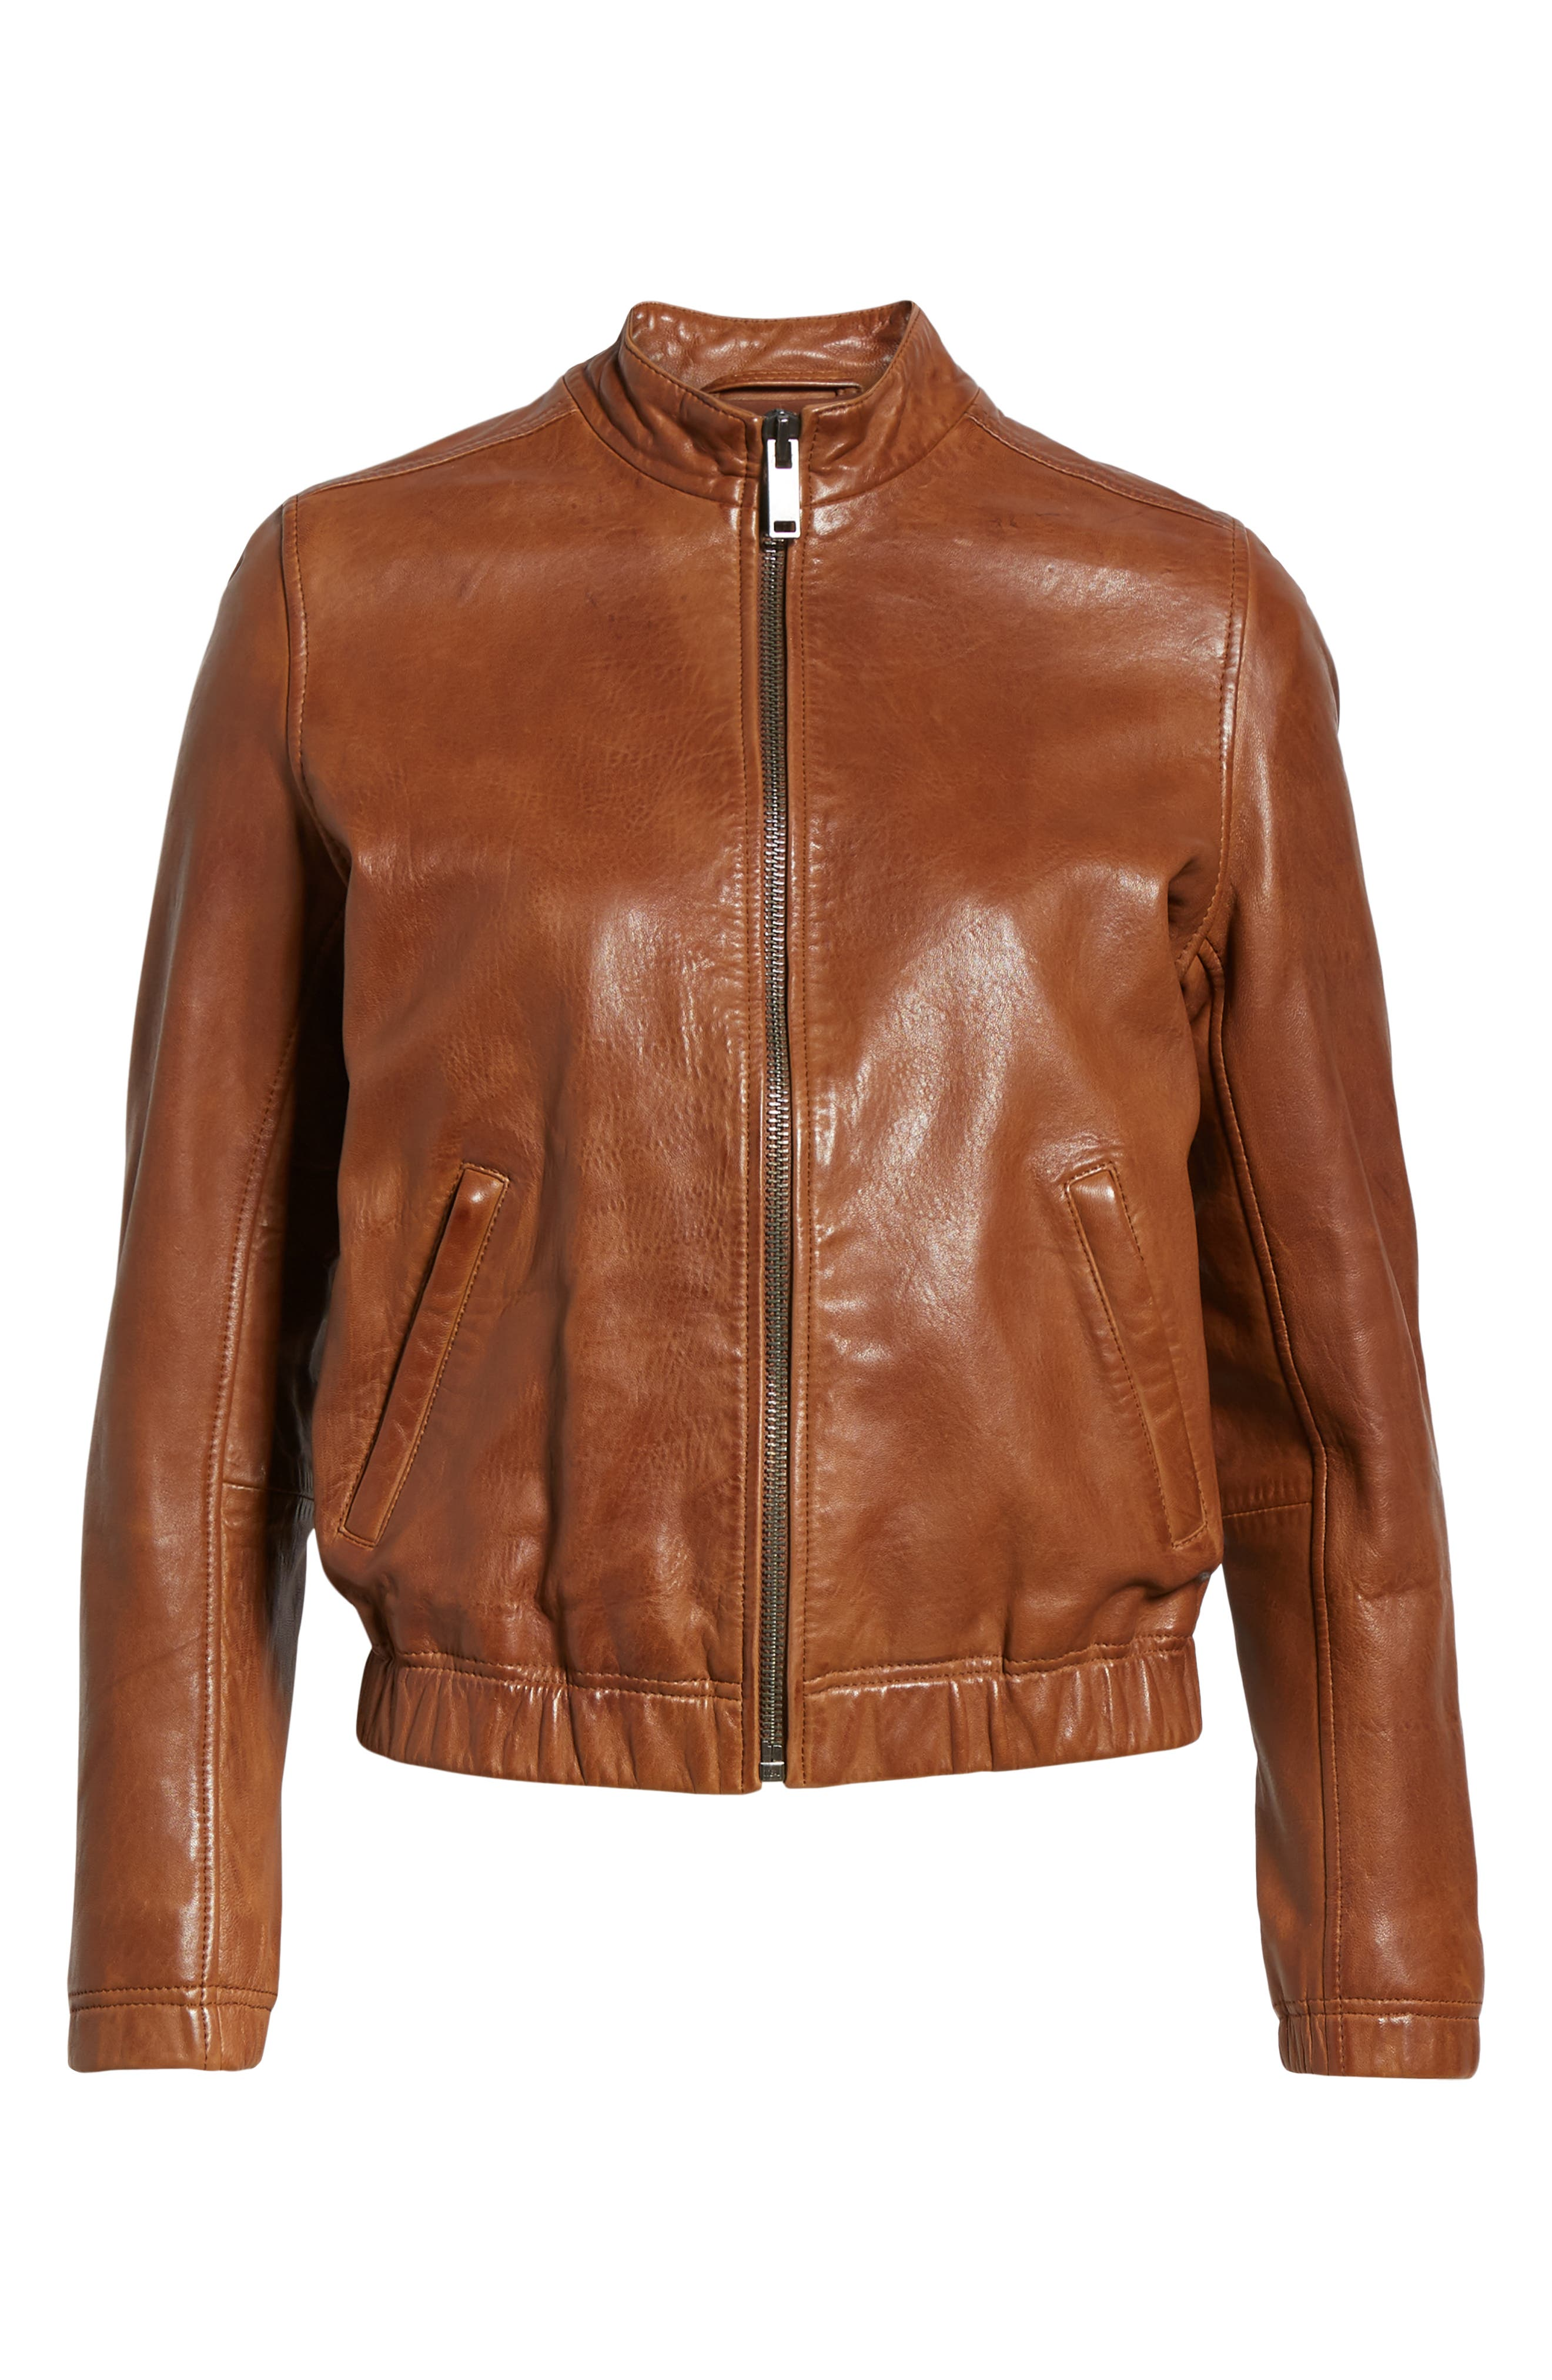 LUCKY BRAND,                             Ana Leather Jacket,                             Alternate thumbnail 6, color,                             210